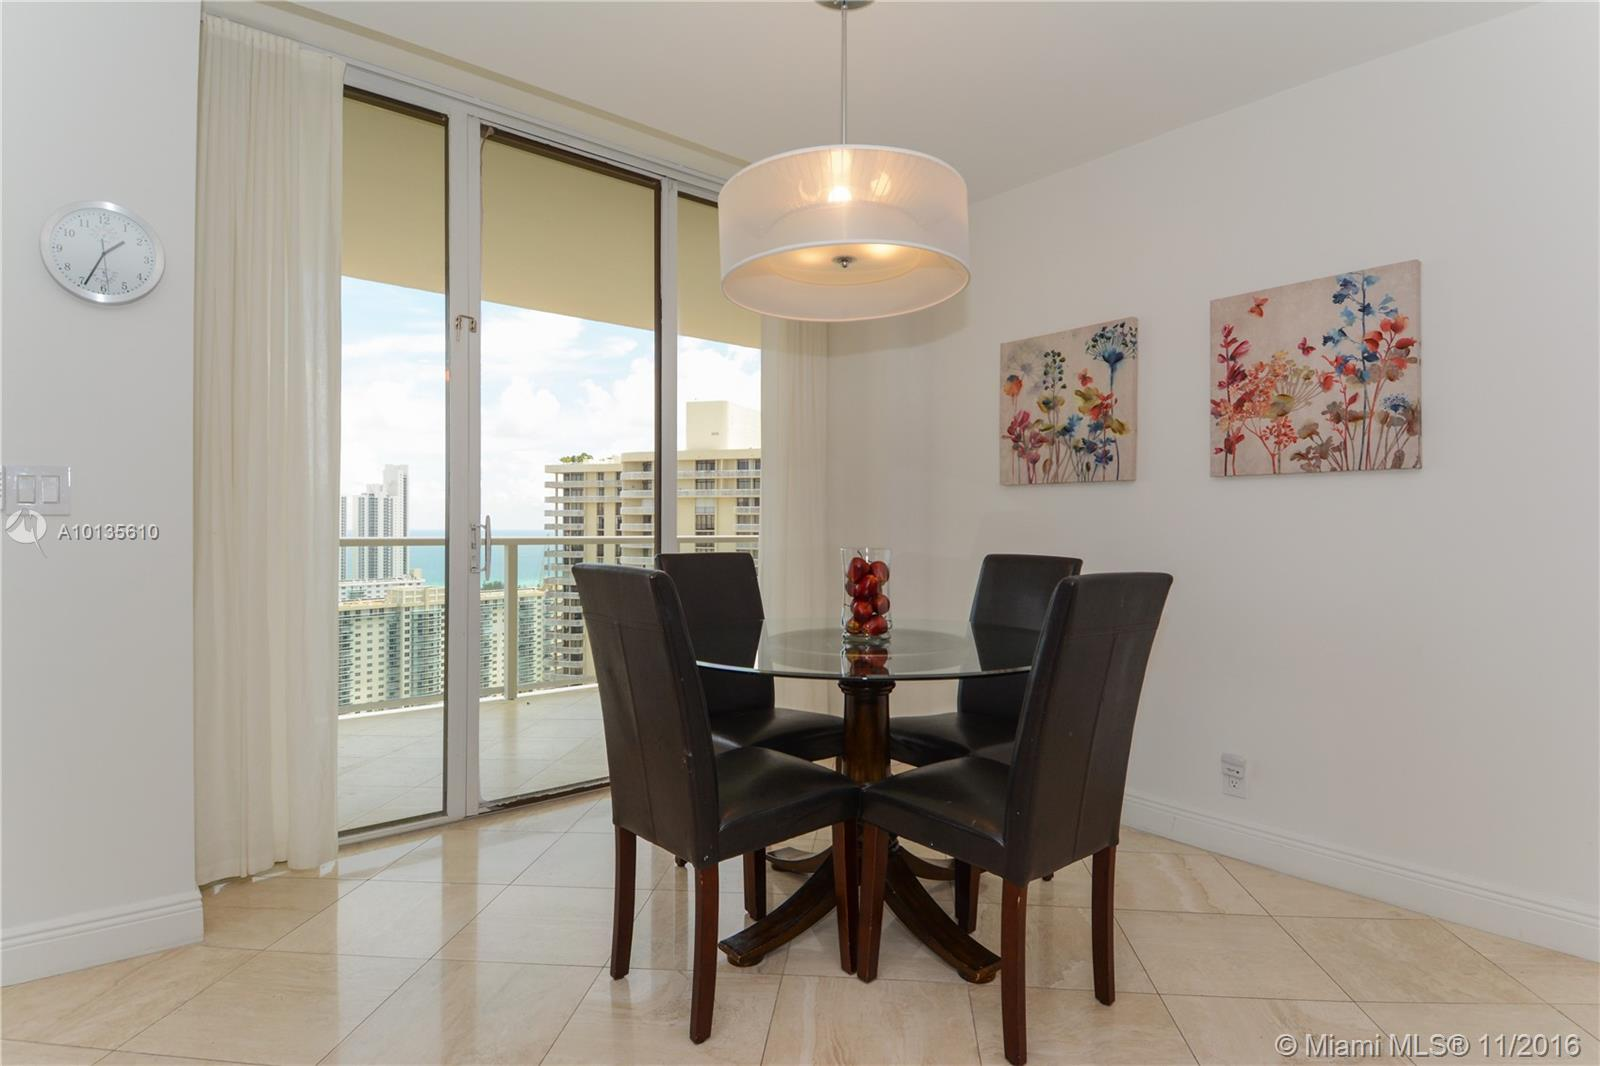 19500 Turnberry way-26AB aventura--fl-33180-a10135610-Pic10